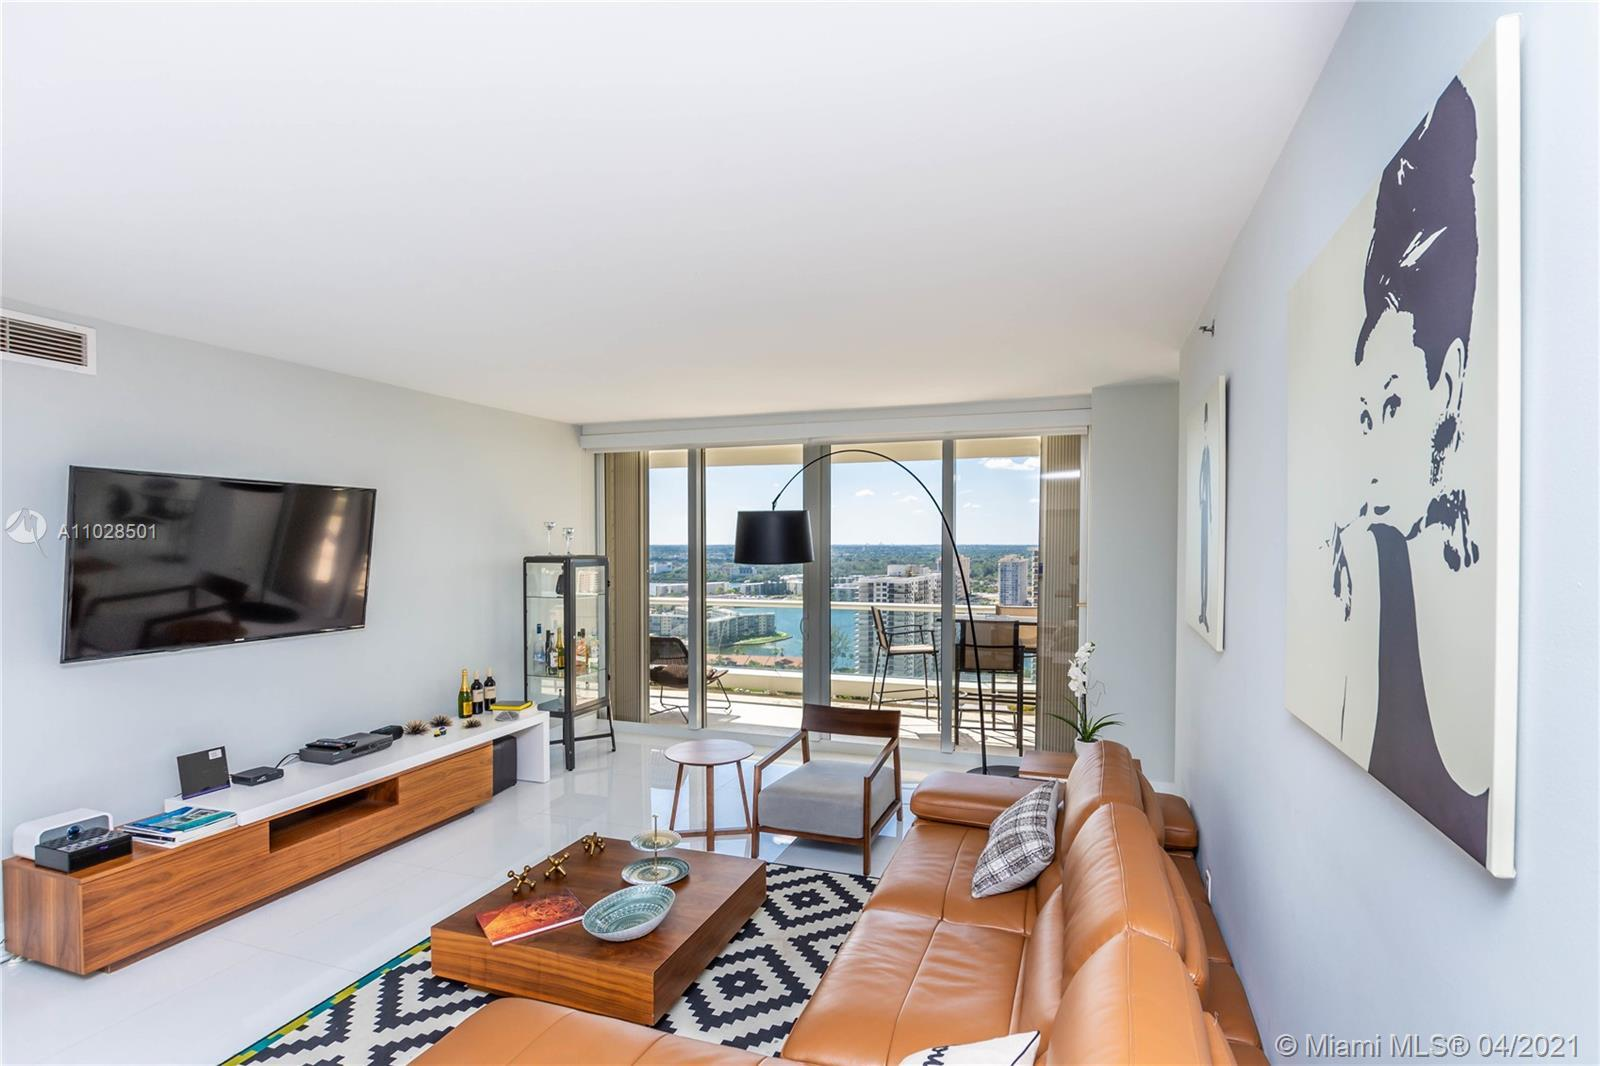 Gorgeous views from this sunny, completely upgraded condo with designer finishes. New kitchen, baths